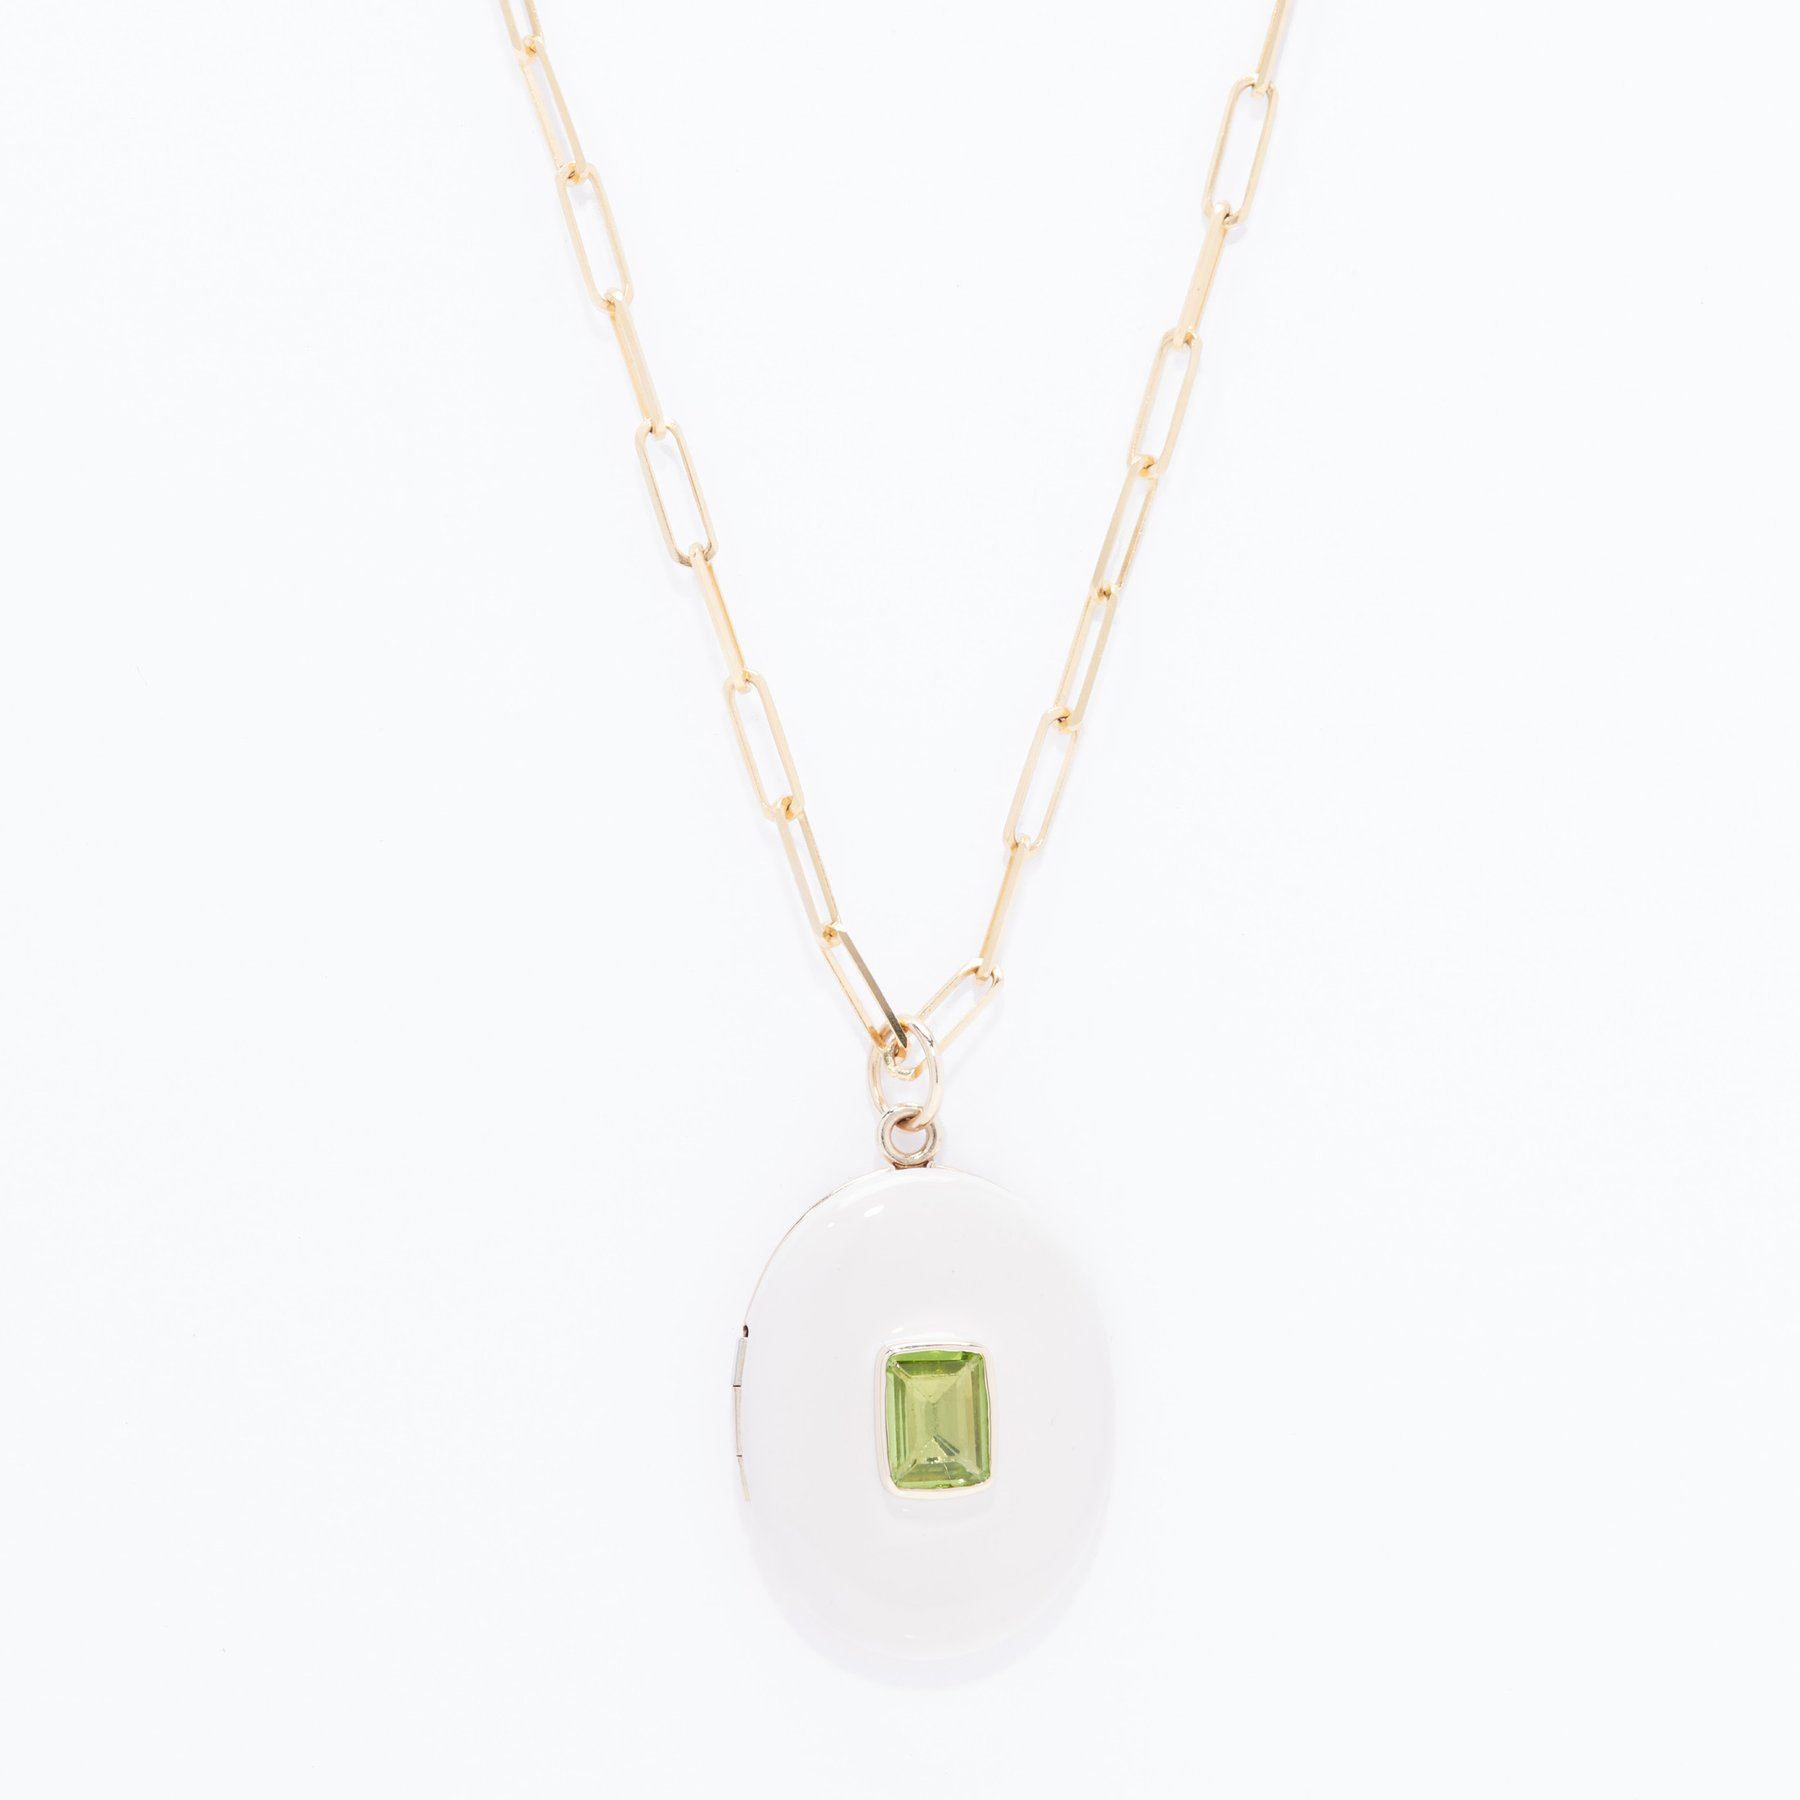 ea599d698 New Instagram Jewelry Brands To Buy From In 2019